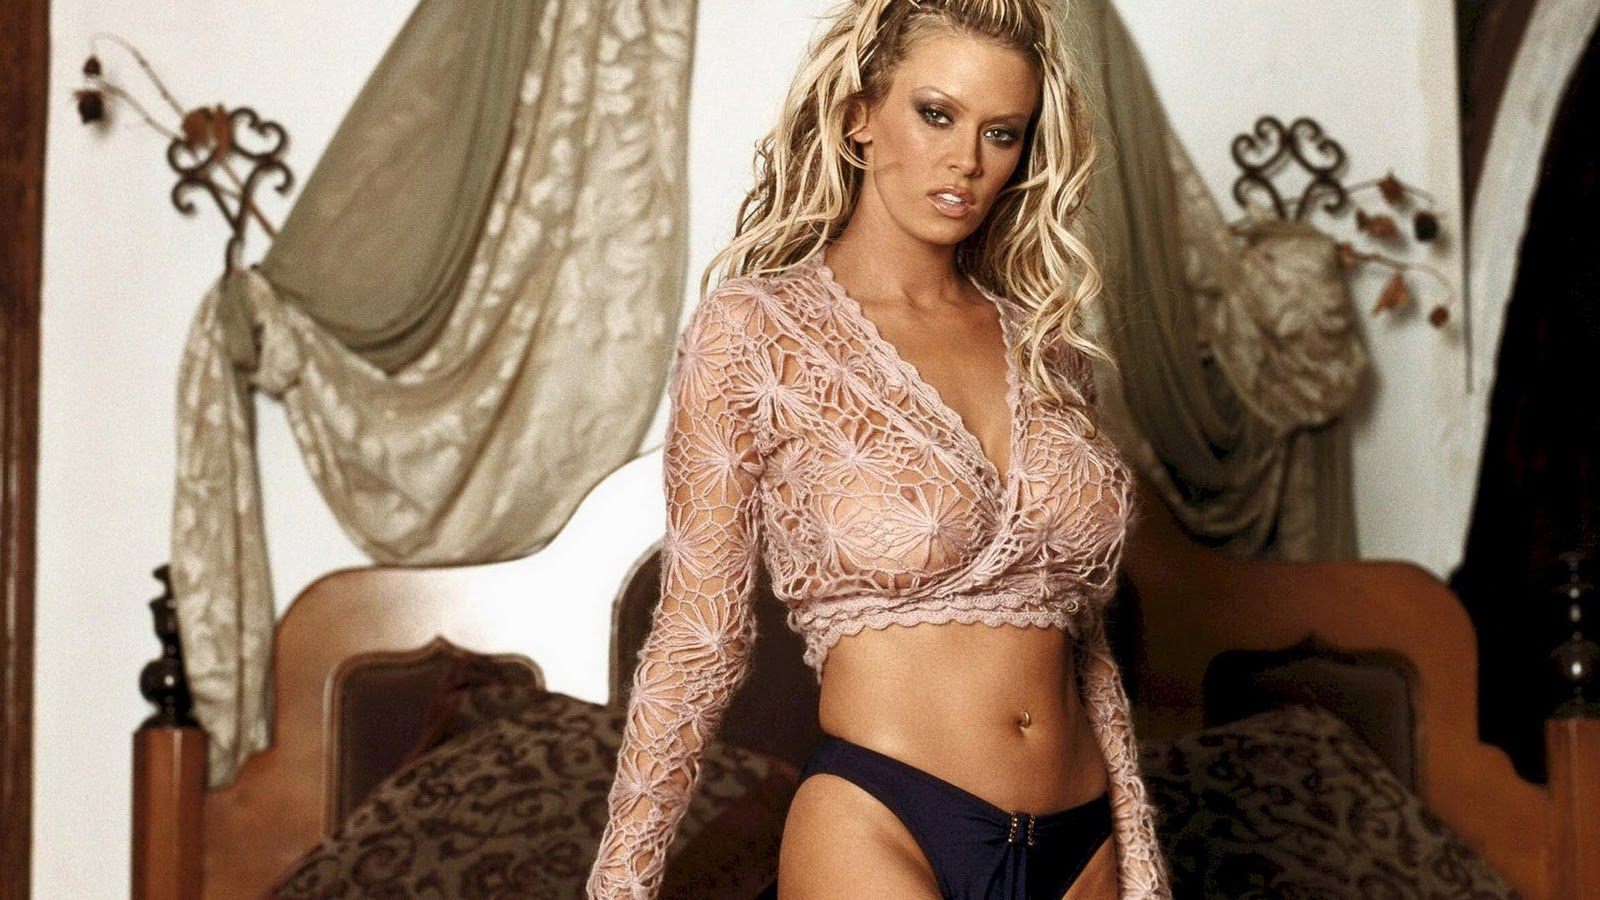 Jenna Jameson Hd